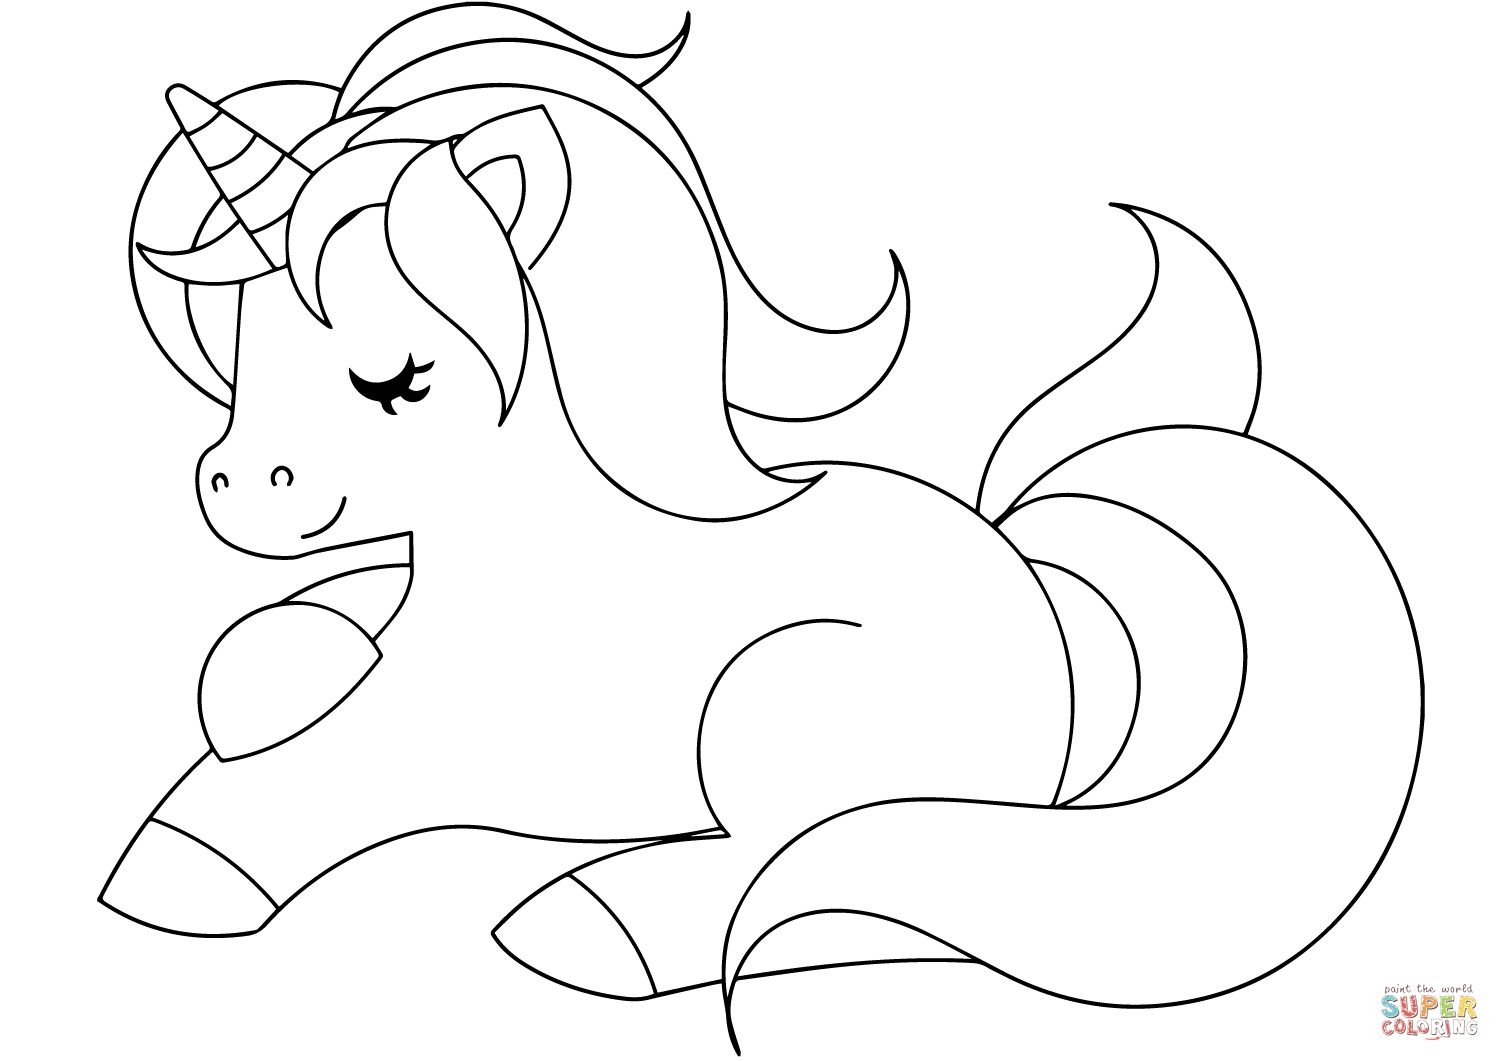 Cute Unicorn Coloring Page | Free Printable Coloring Pages With - Free Printable Unicorn Coloring Pages